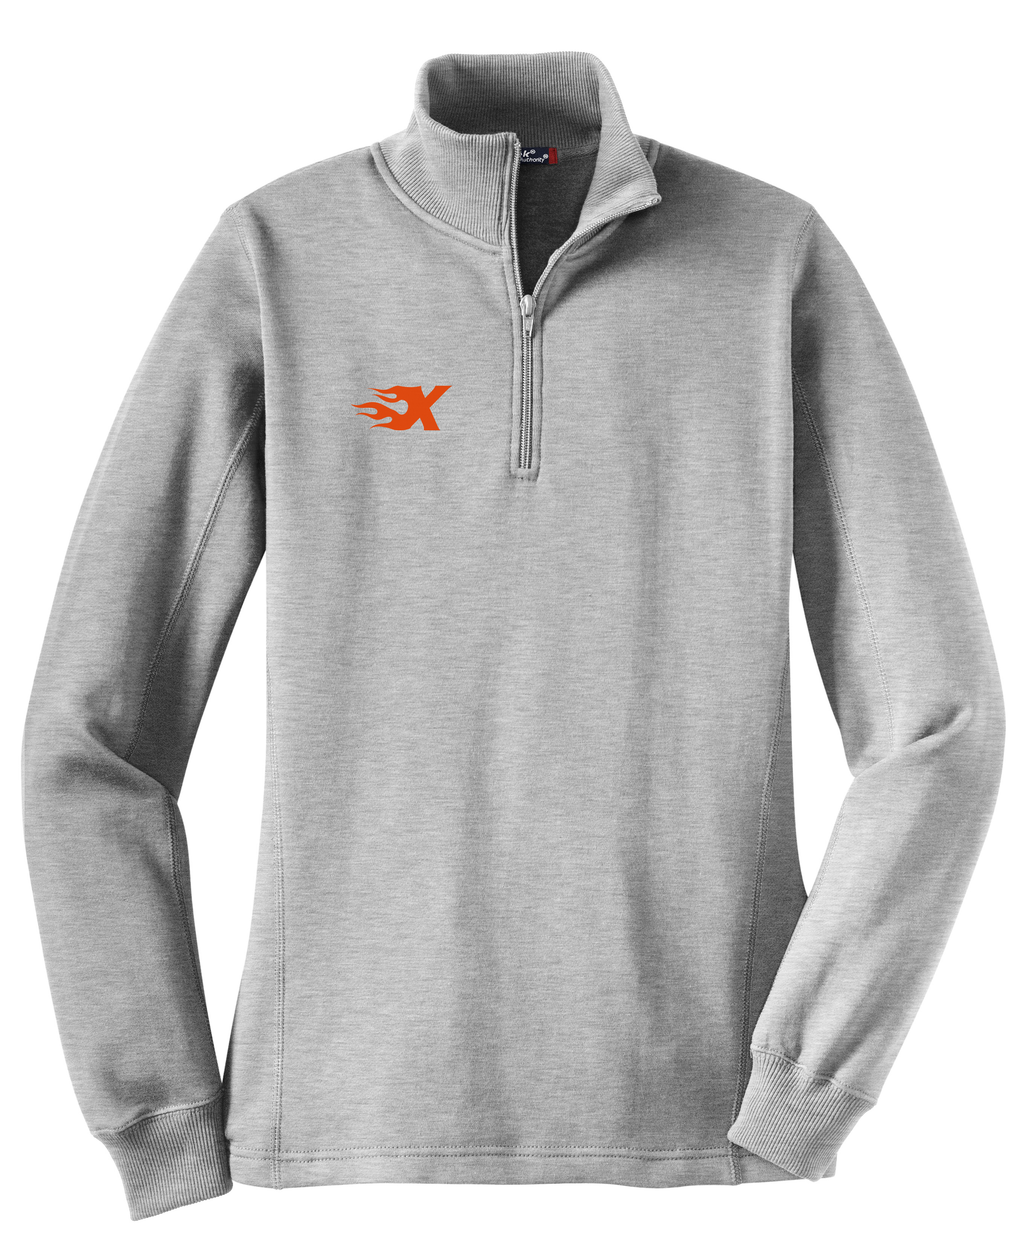 Xtreme Lacrosse Athletic Heather Women's 1/4 Zip Fleece